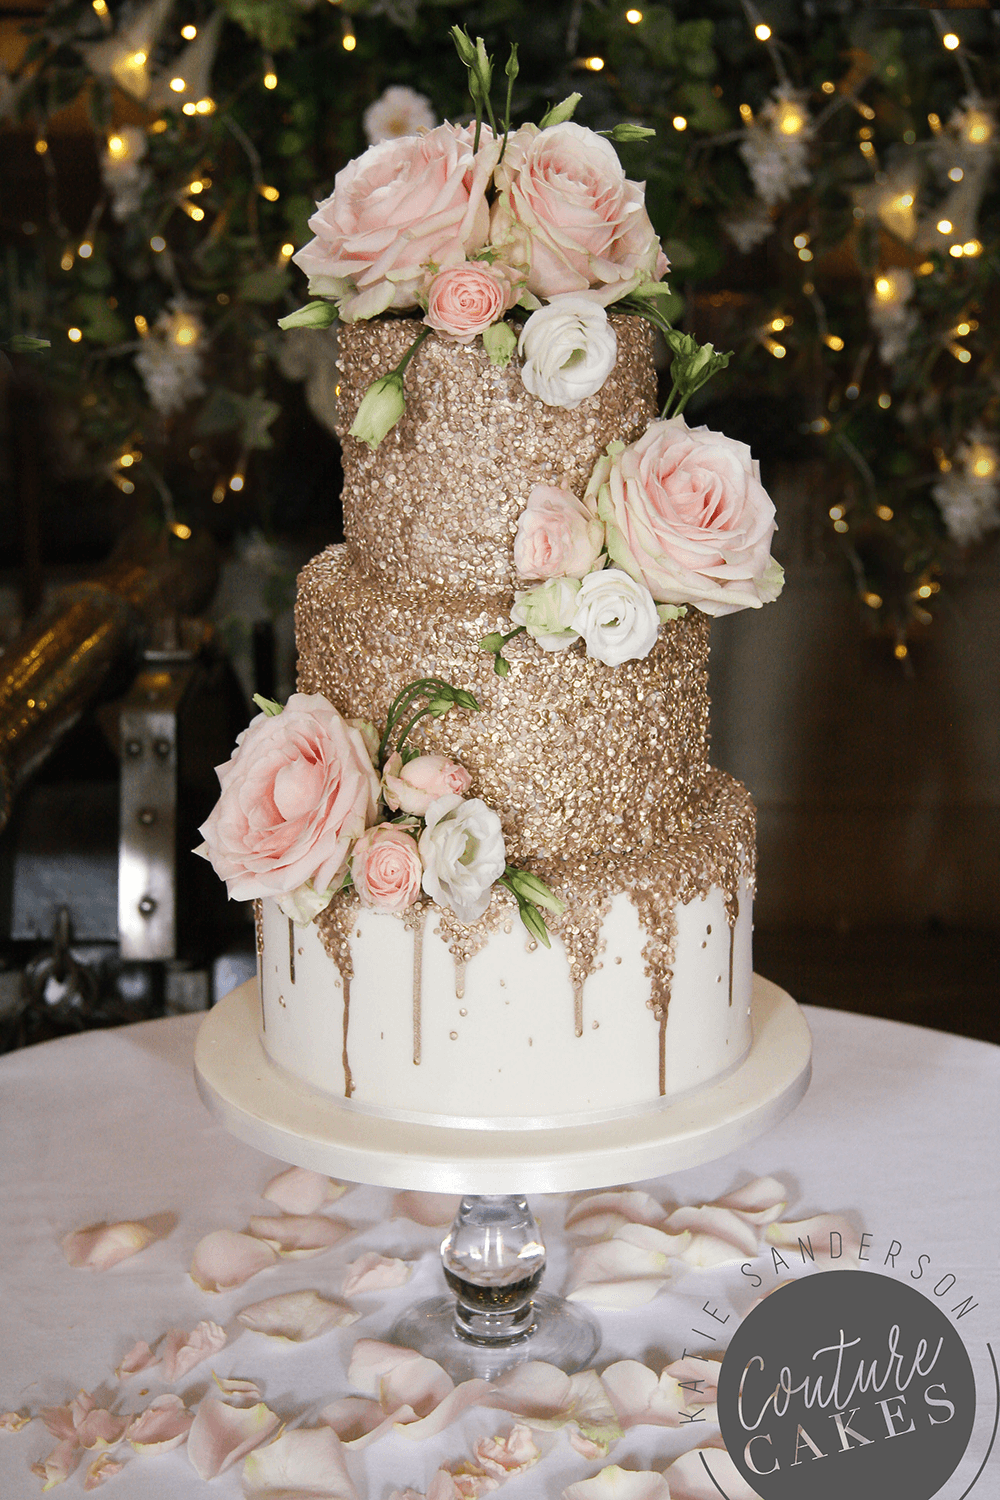 Three Tear Wedding Cakes.Tiered Wedding Cakes For Stamford Lincolnshire